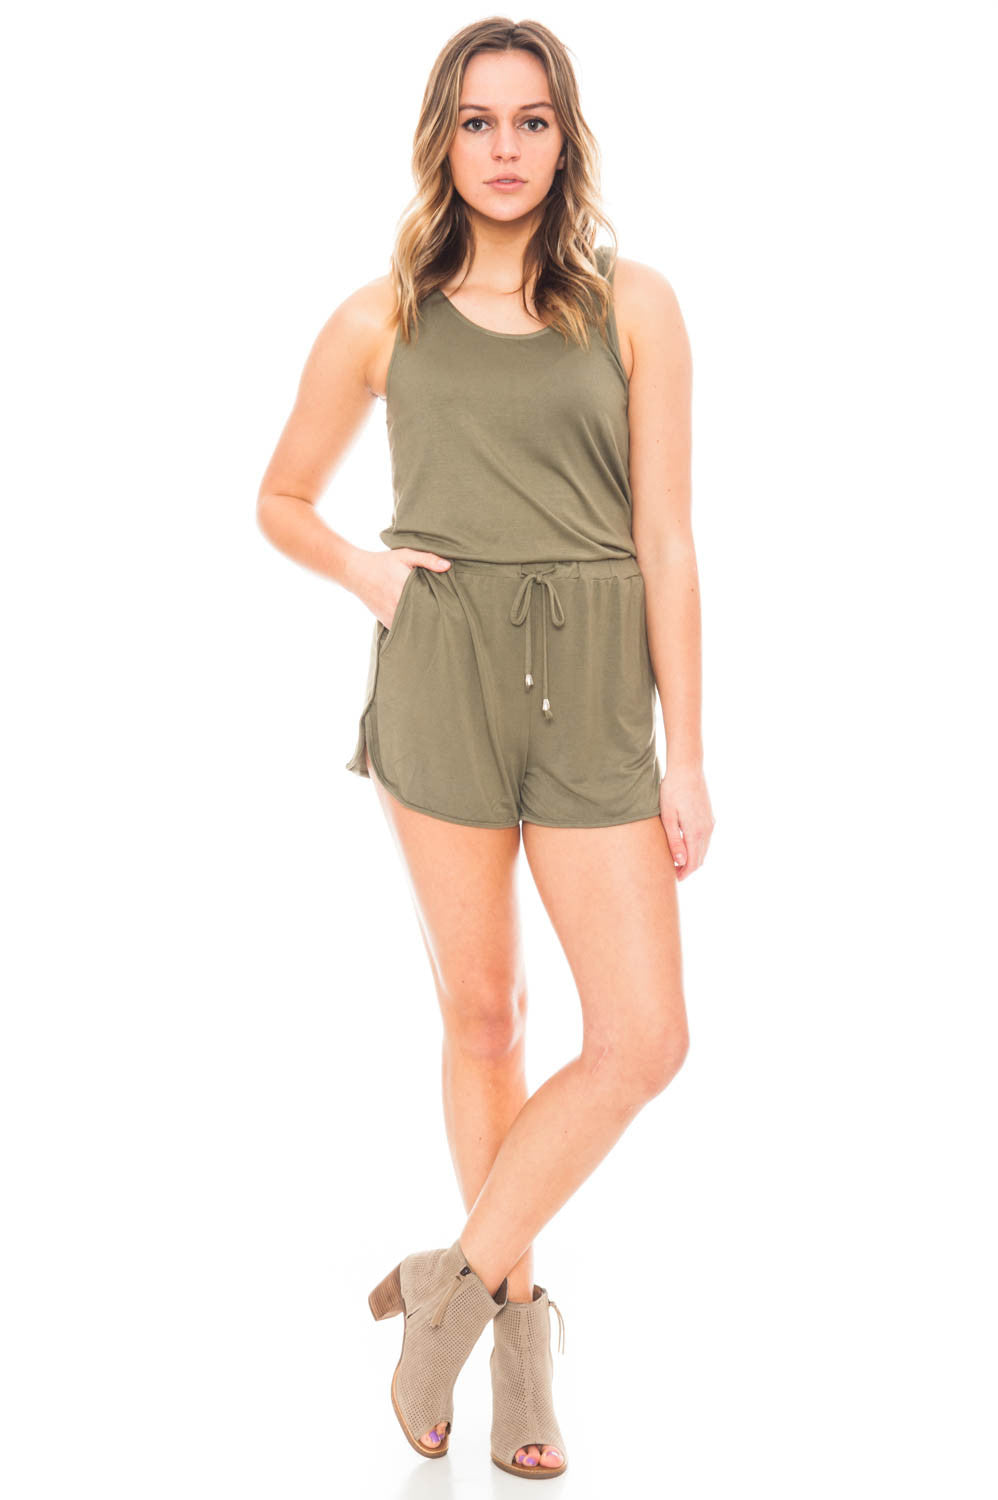 Romper - Super Soft Knotted Back Romper with Pockets